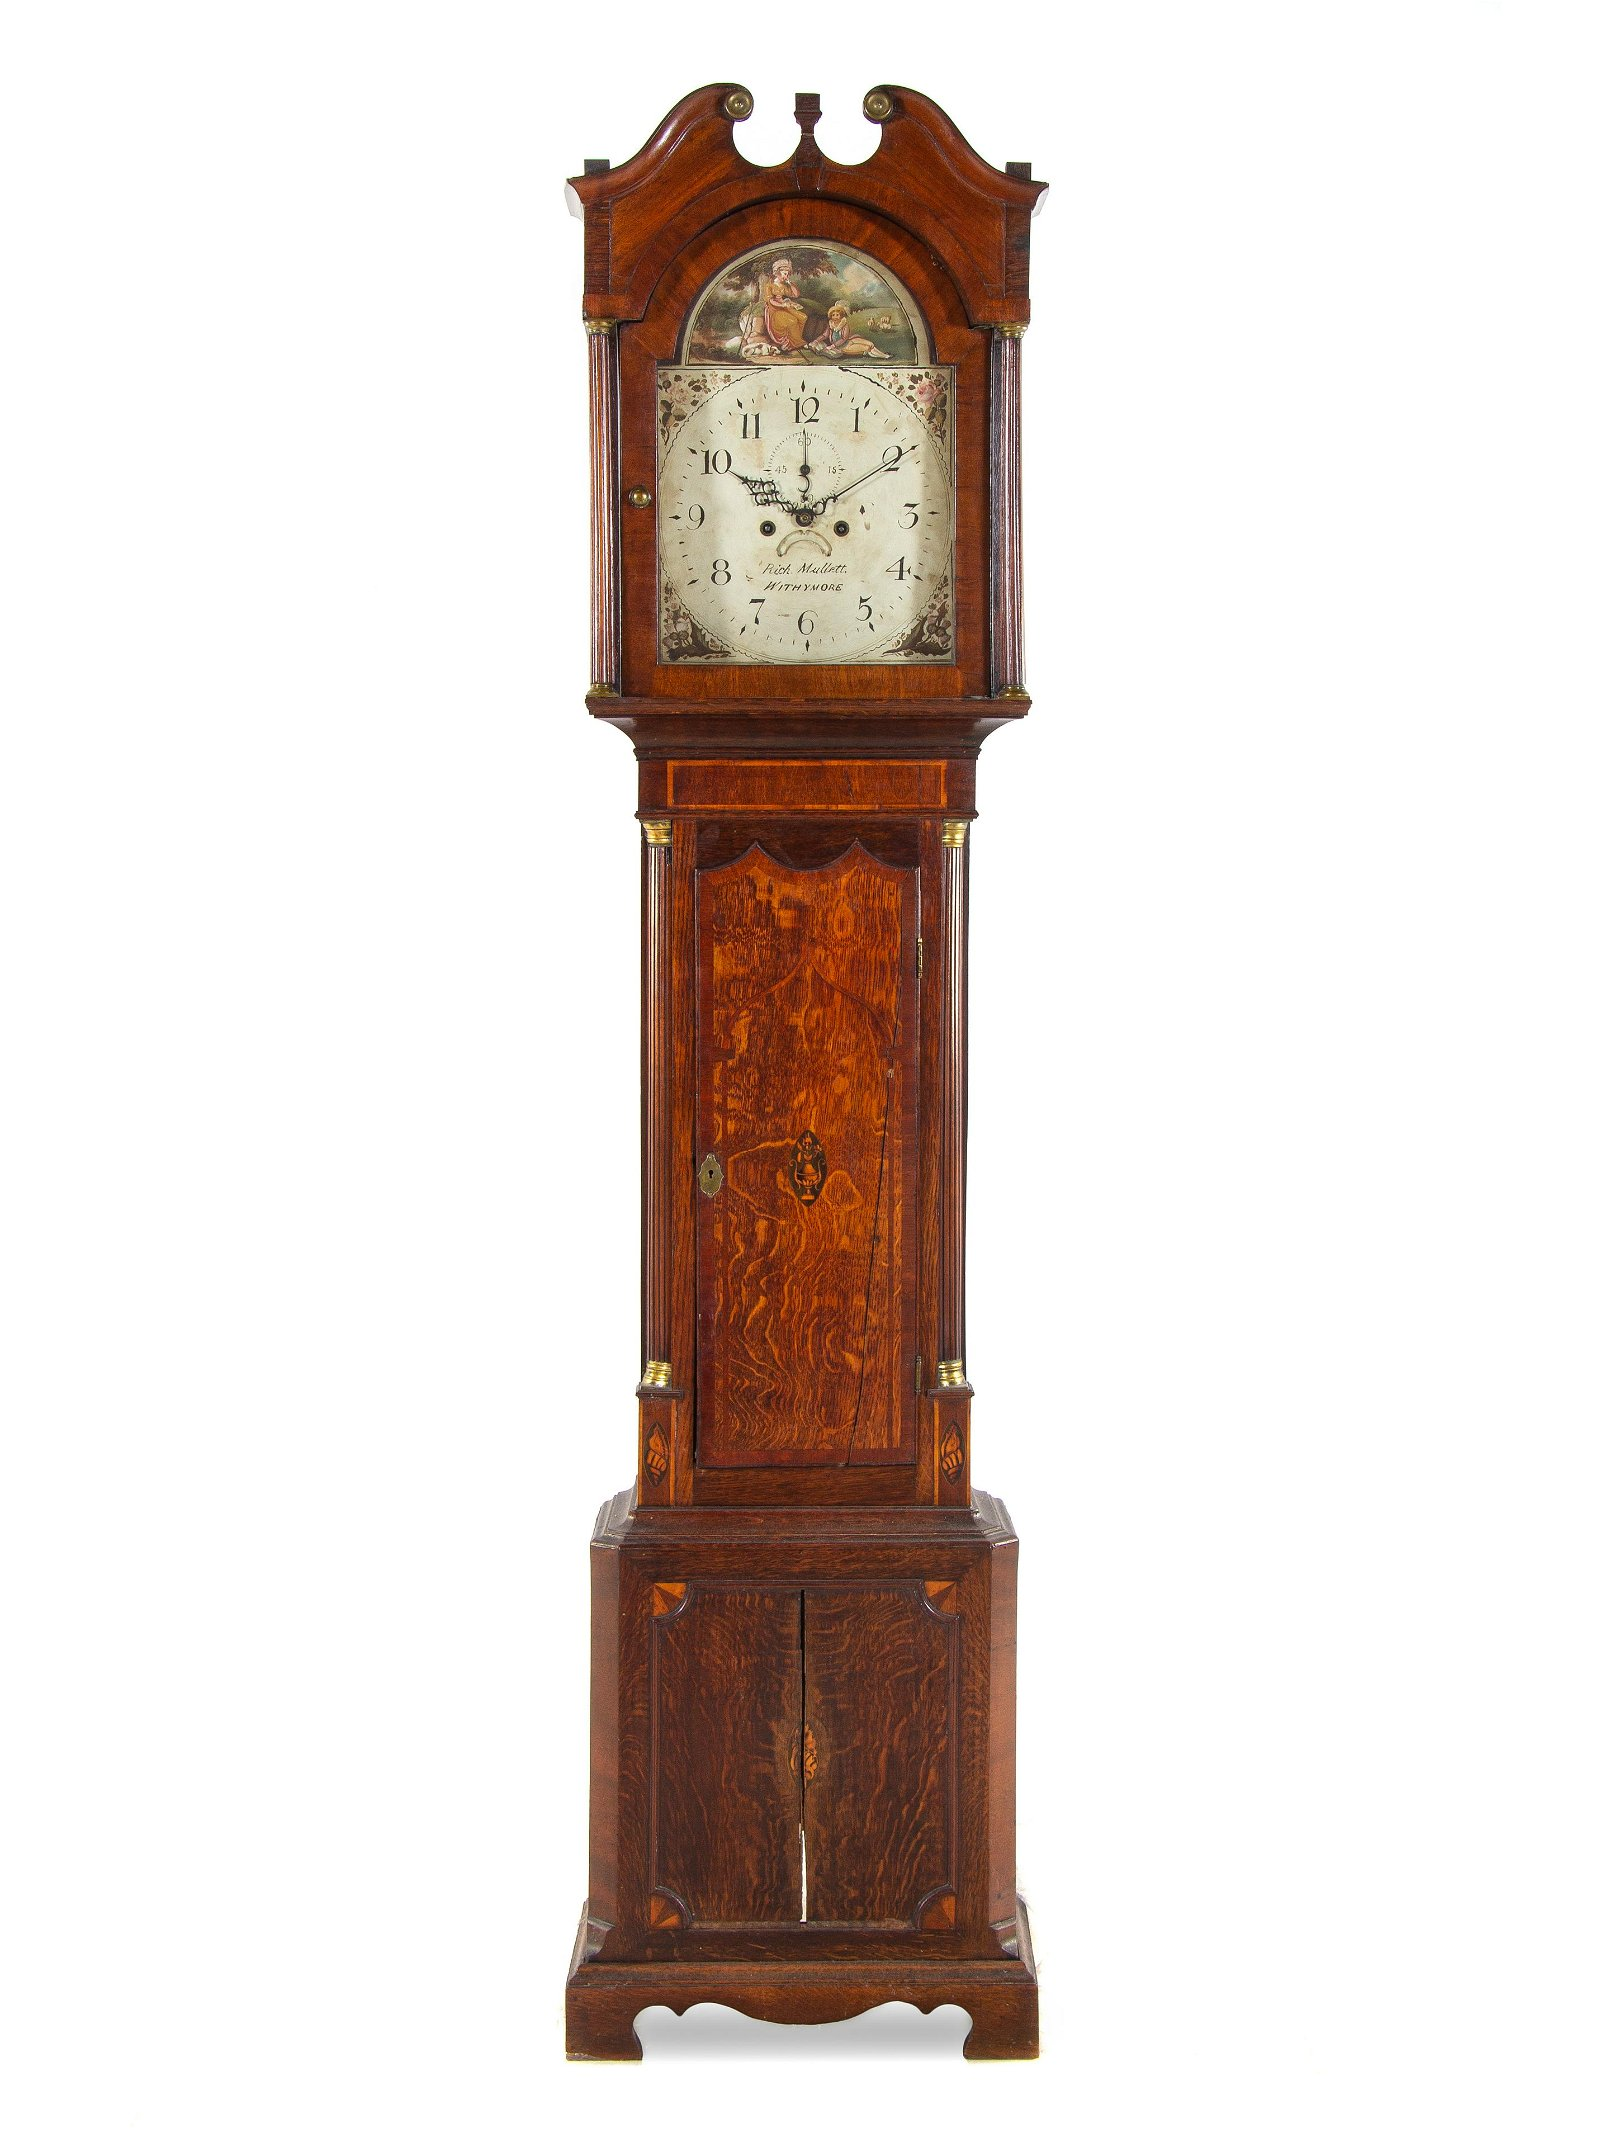 A George III Oak and Mahogany Tall Case Clock